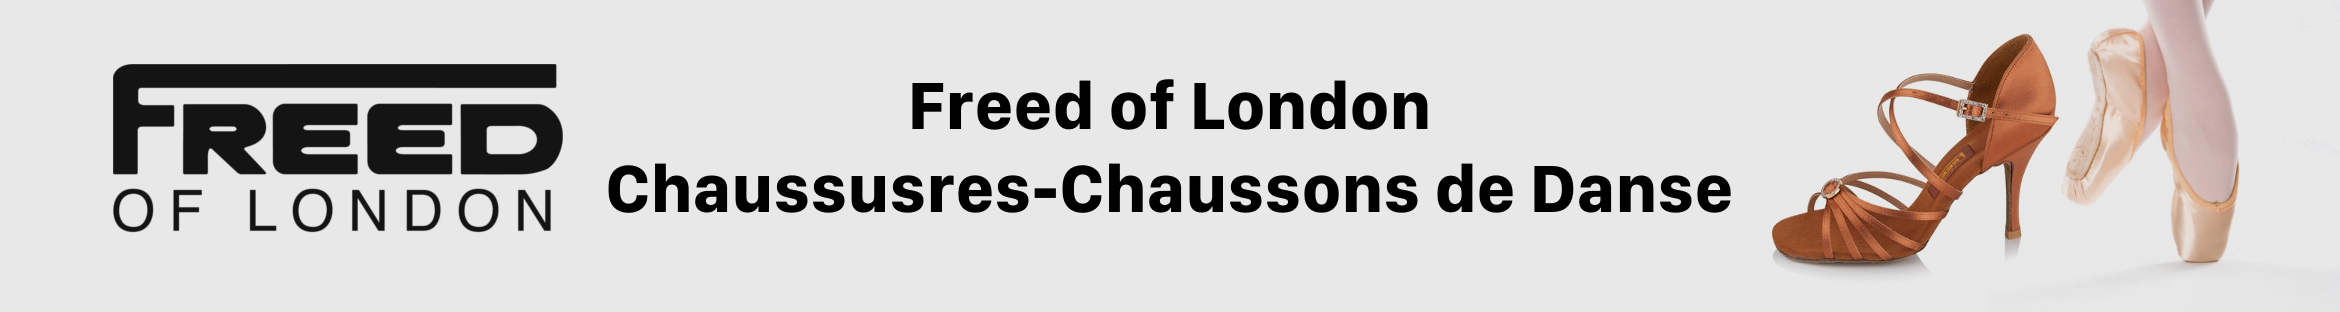 freed-london-chaussures-chaussons-danse.png